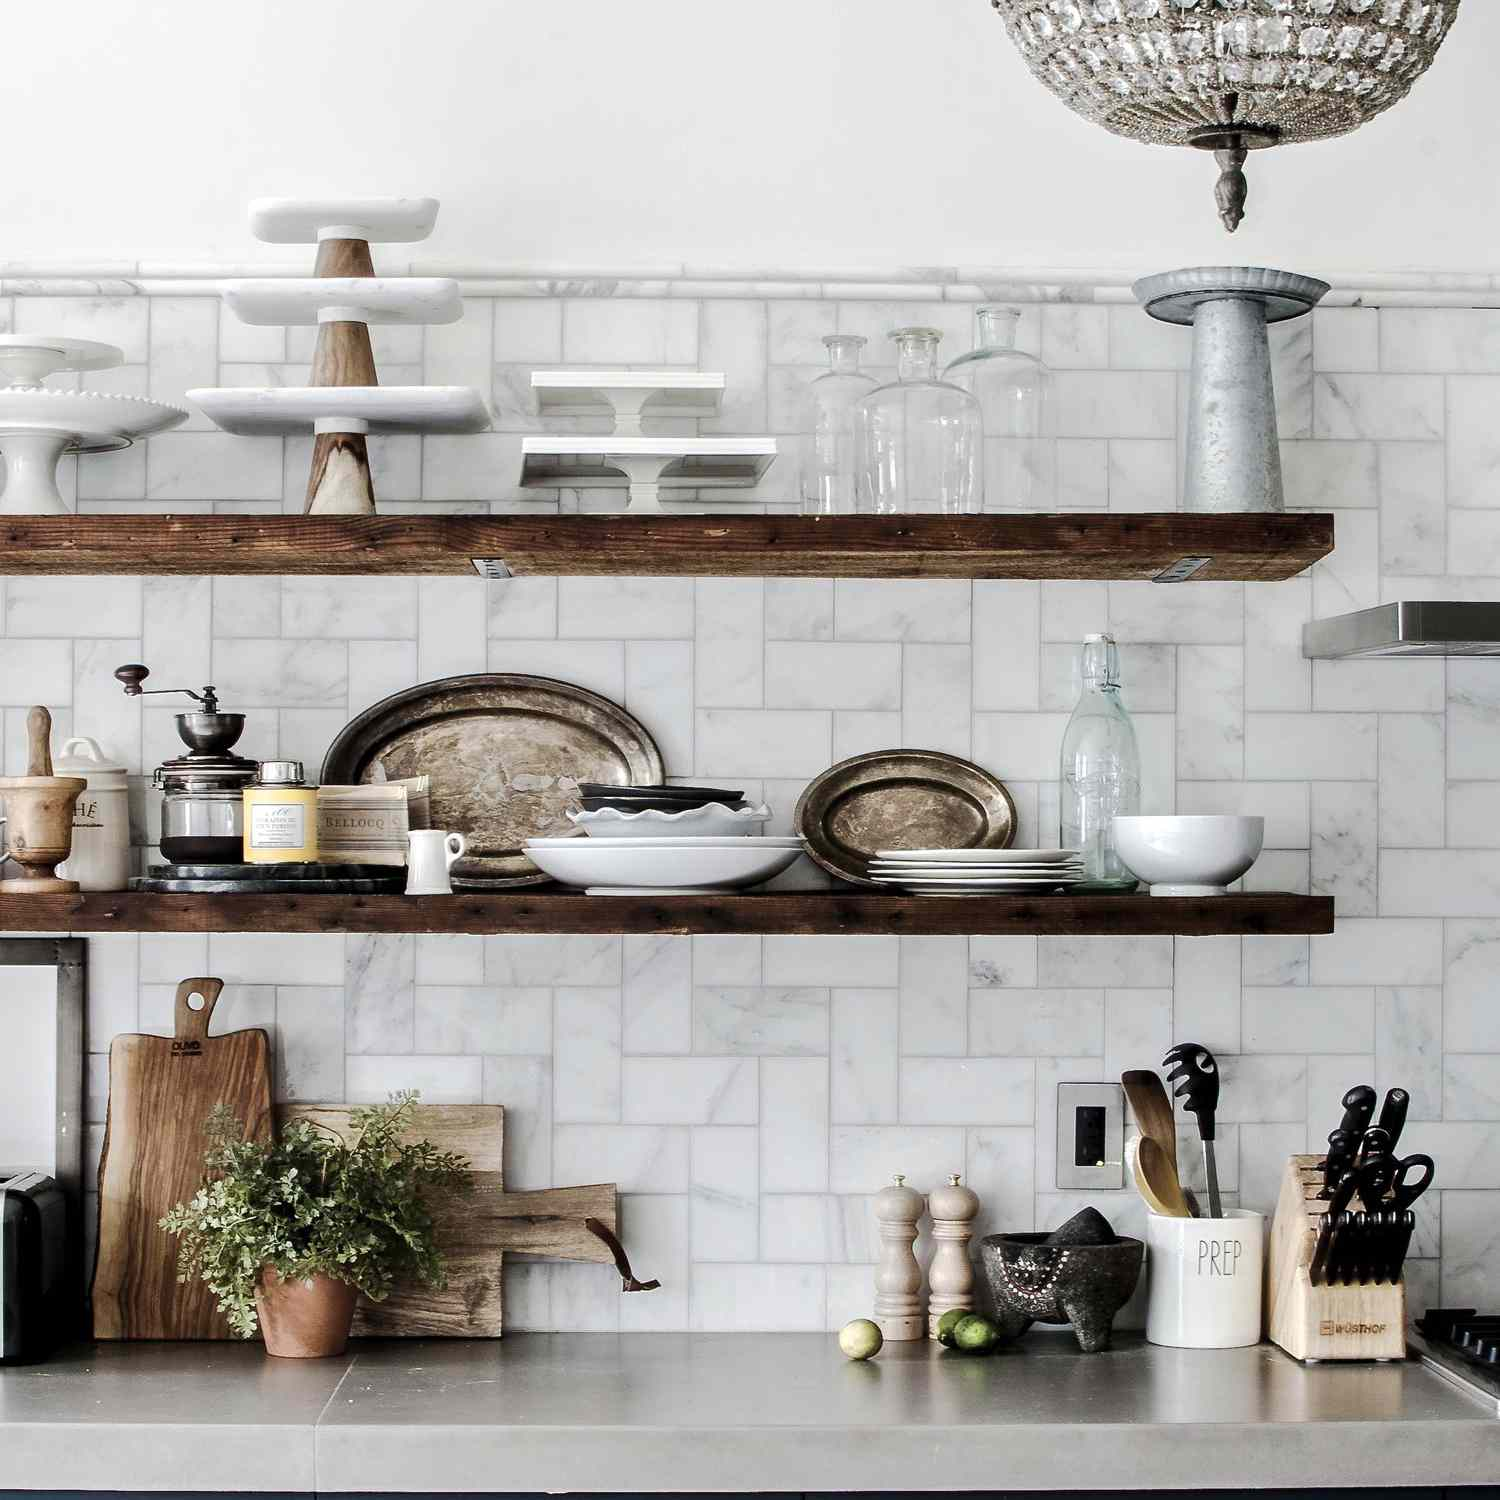 A kitchen with a chandelier in it